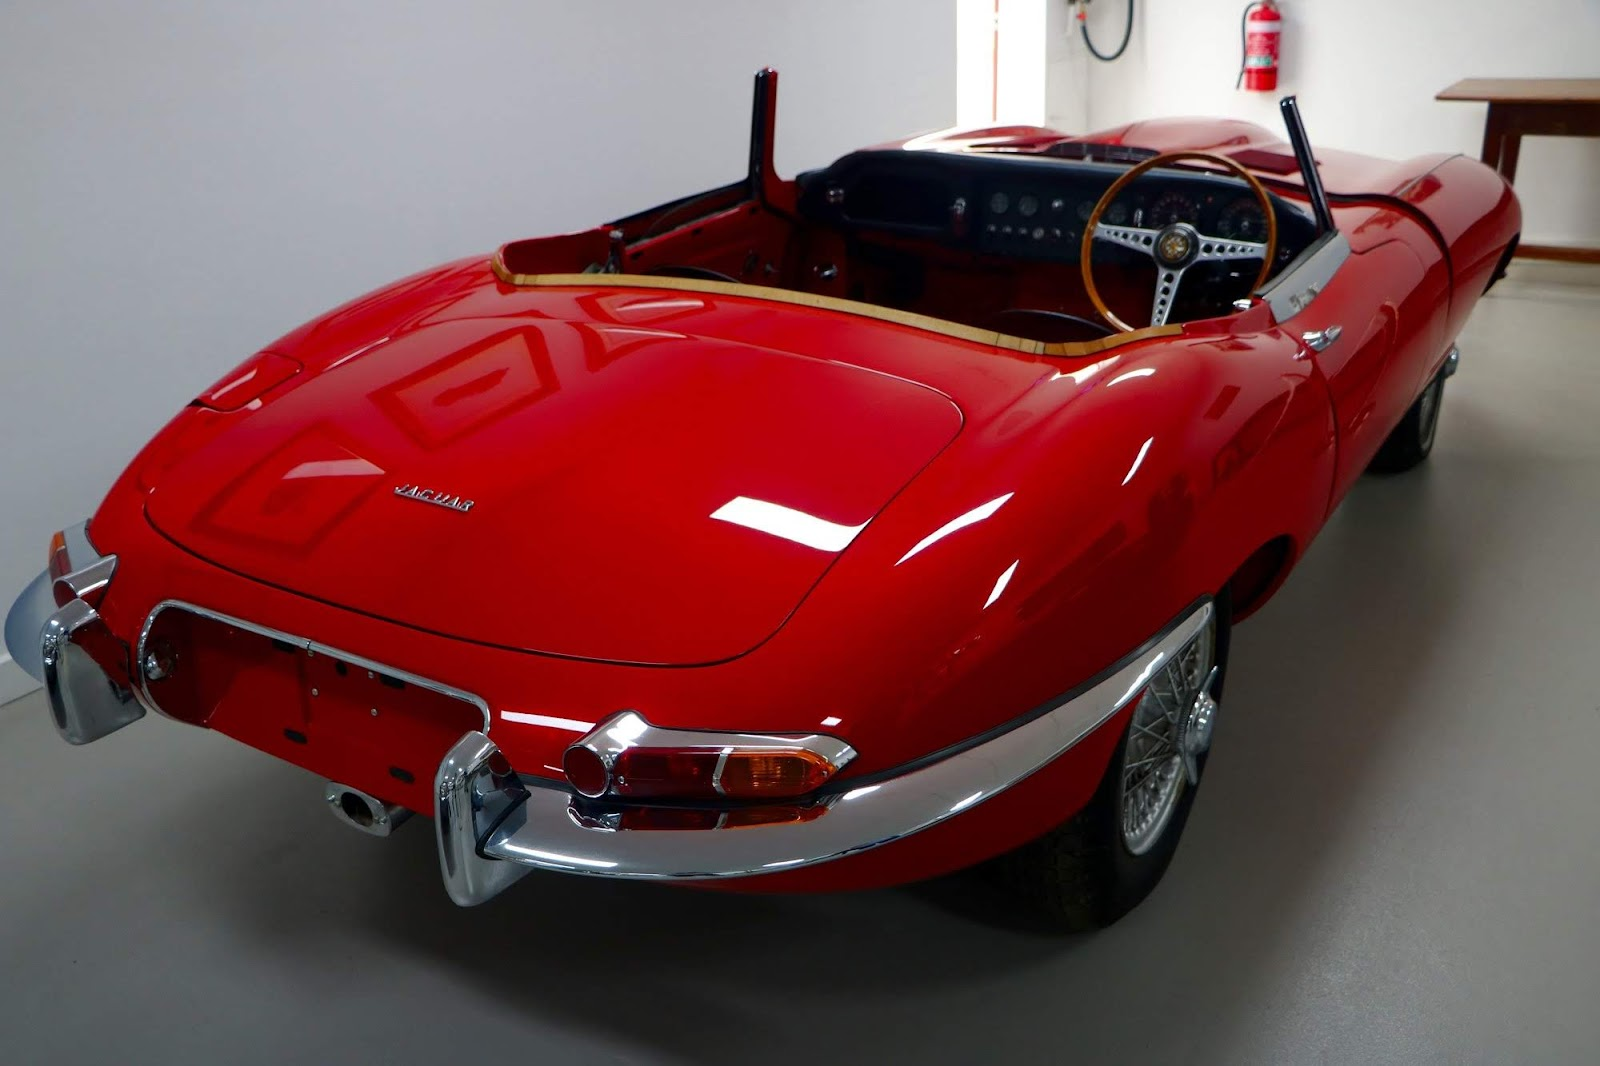 Carl_Lindner_Collection - Jaguar E-Type Series I - Under Restoration 03.jpg